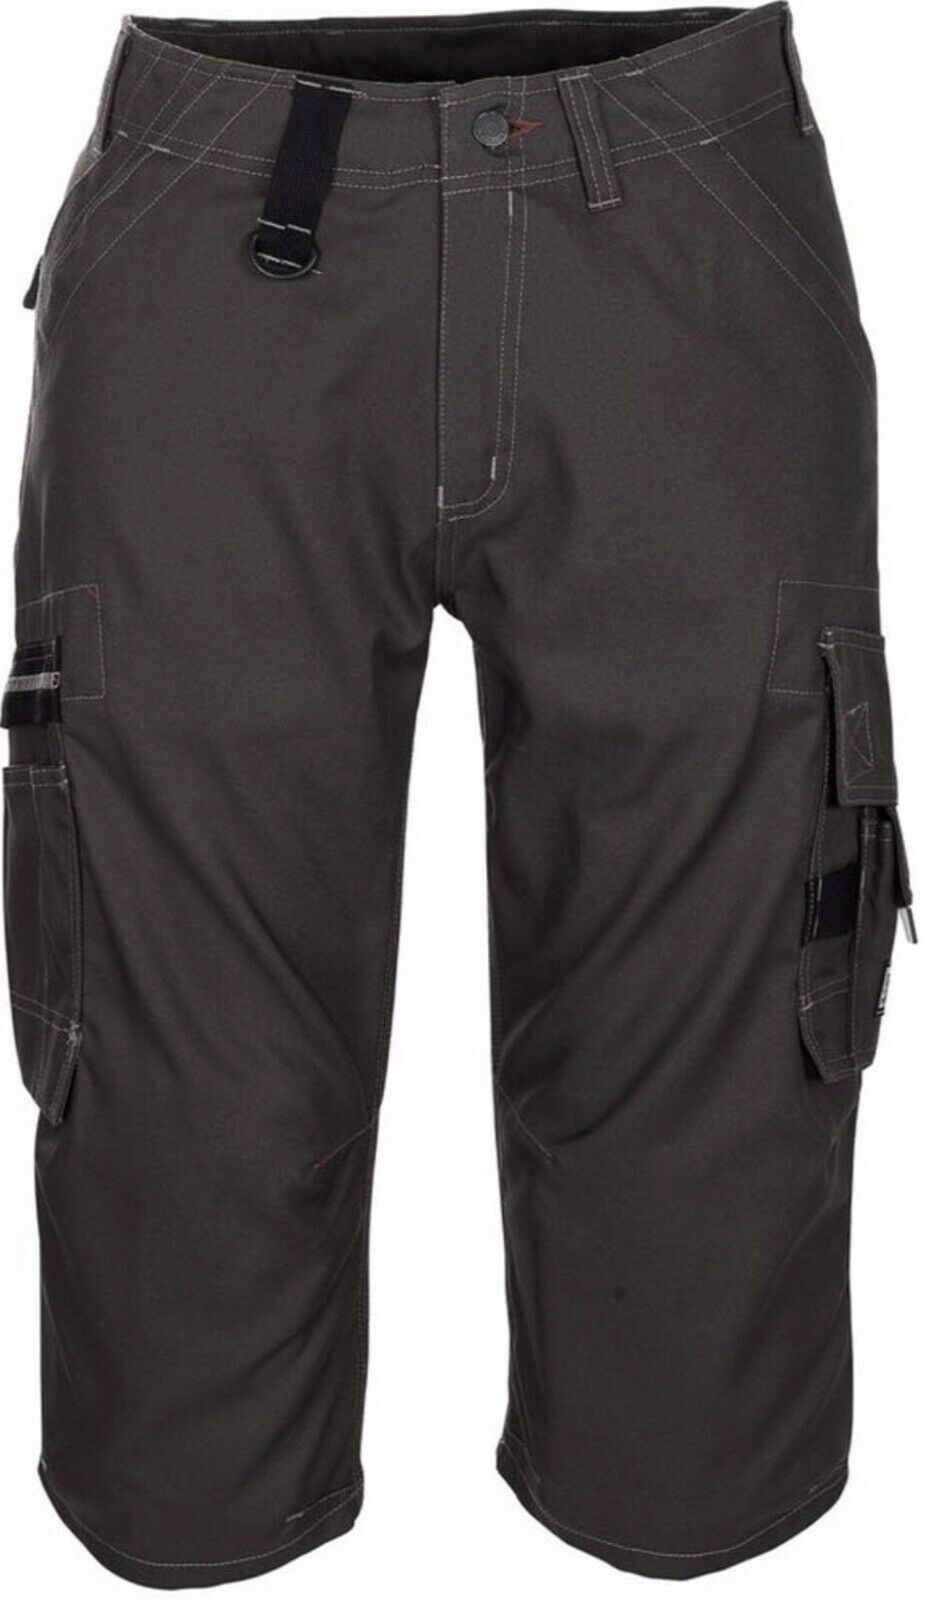 Mascot 09249-154-18-C54   Limnos    Length Trousers, C54, Anthracite